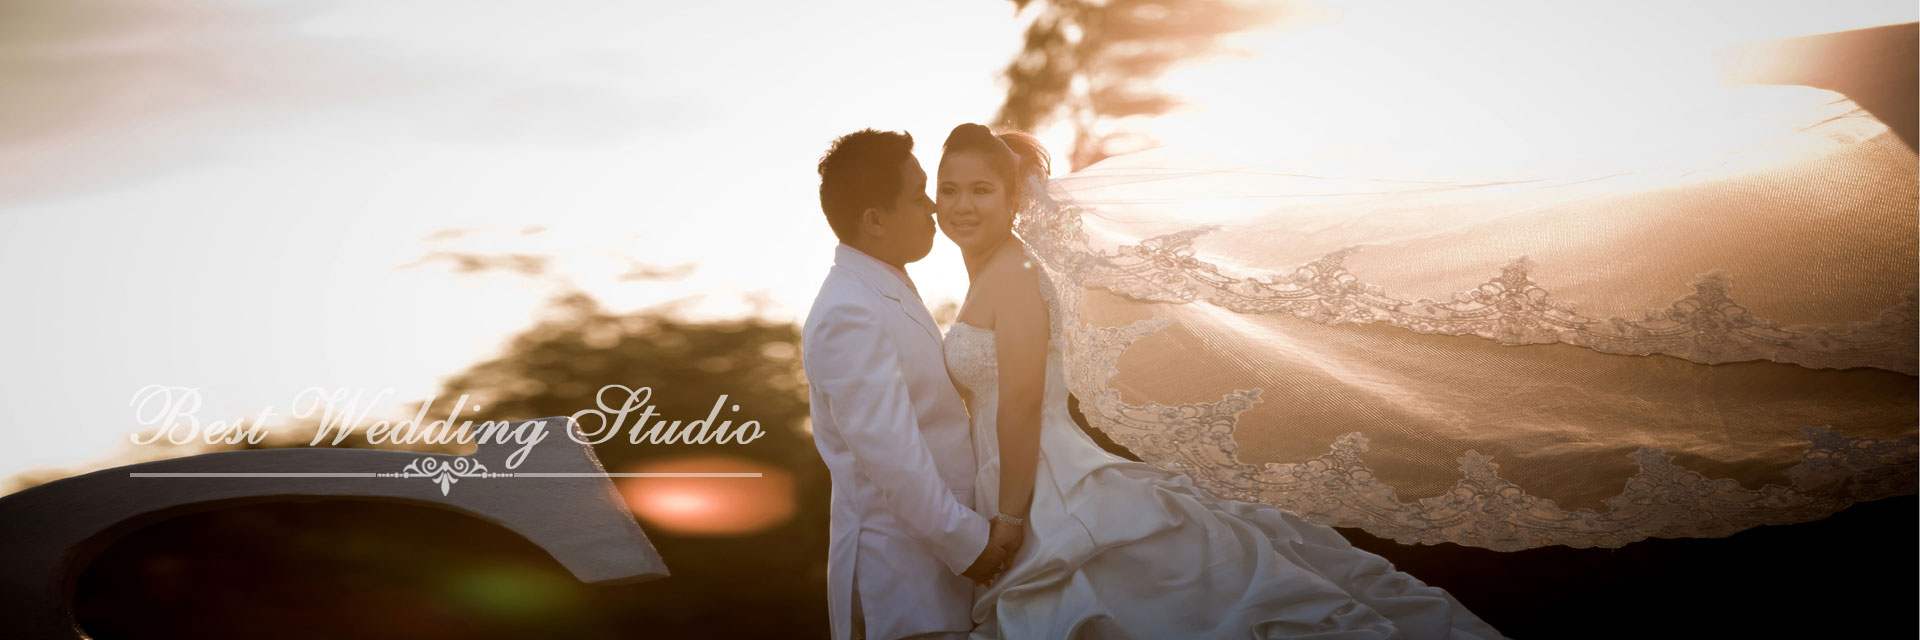 bestweddingstudio01